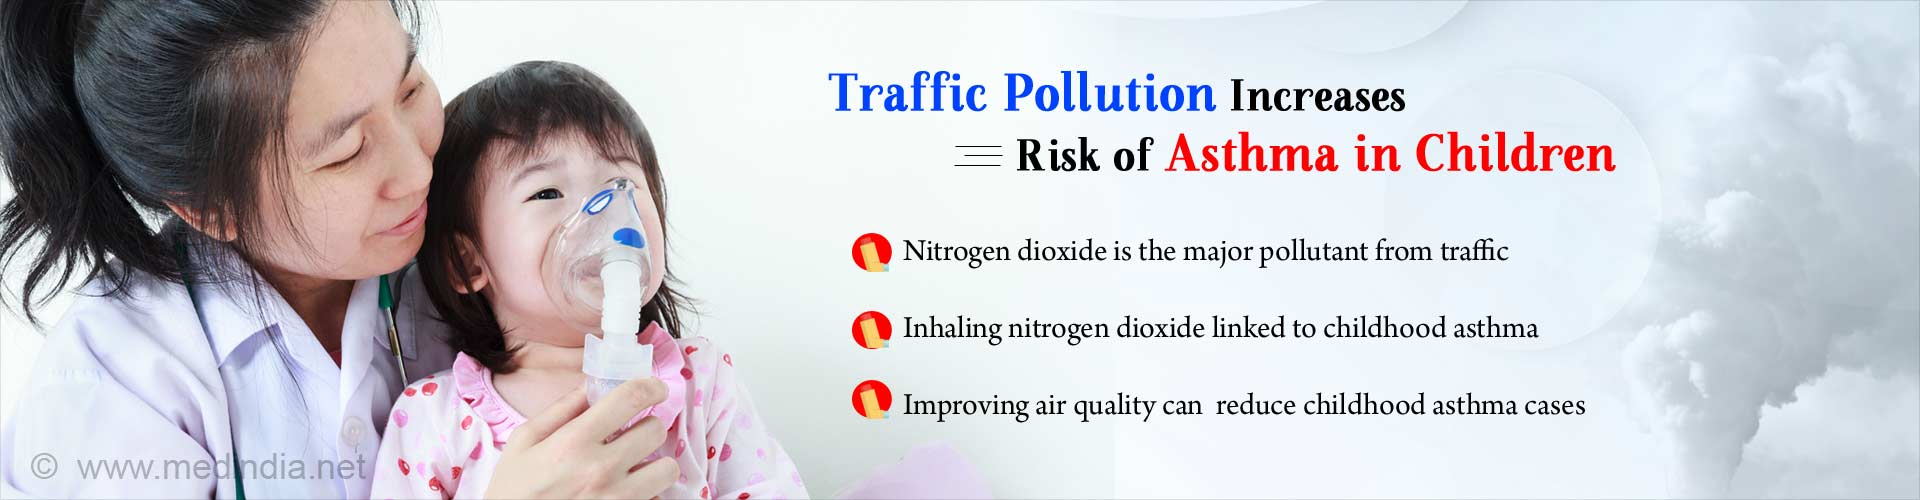 Millions of Children Develop Asthma Due to Traffic Pollution